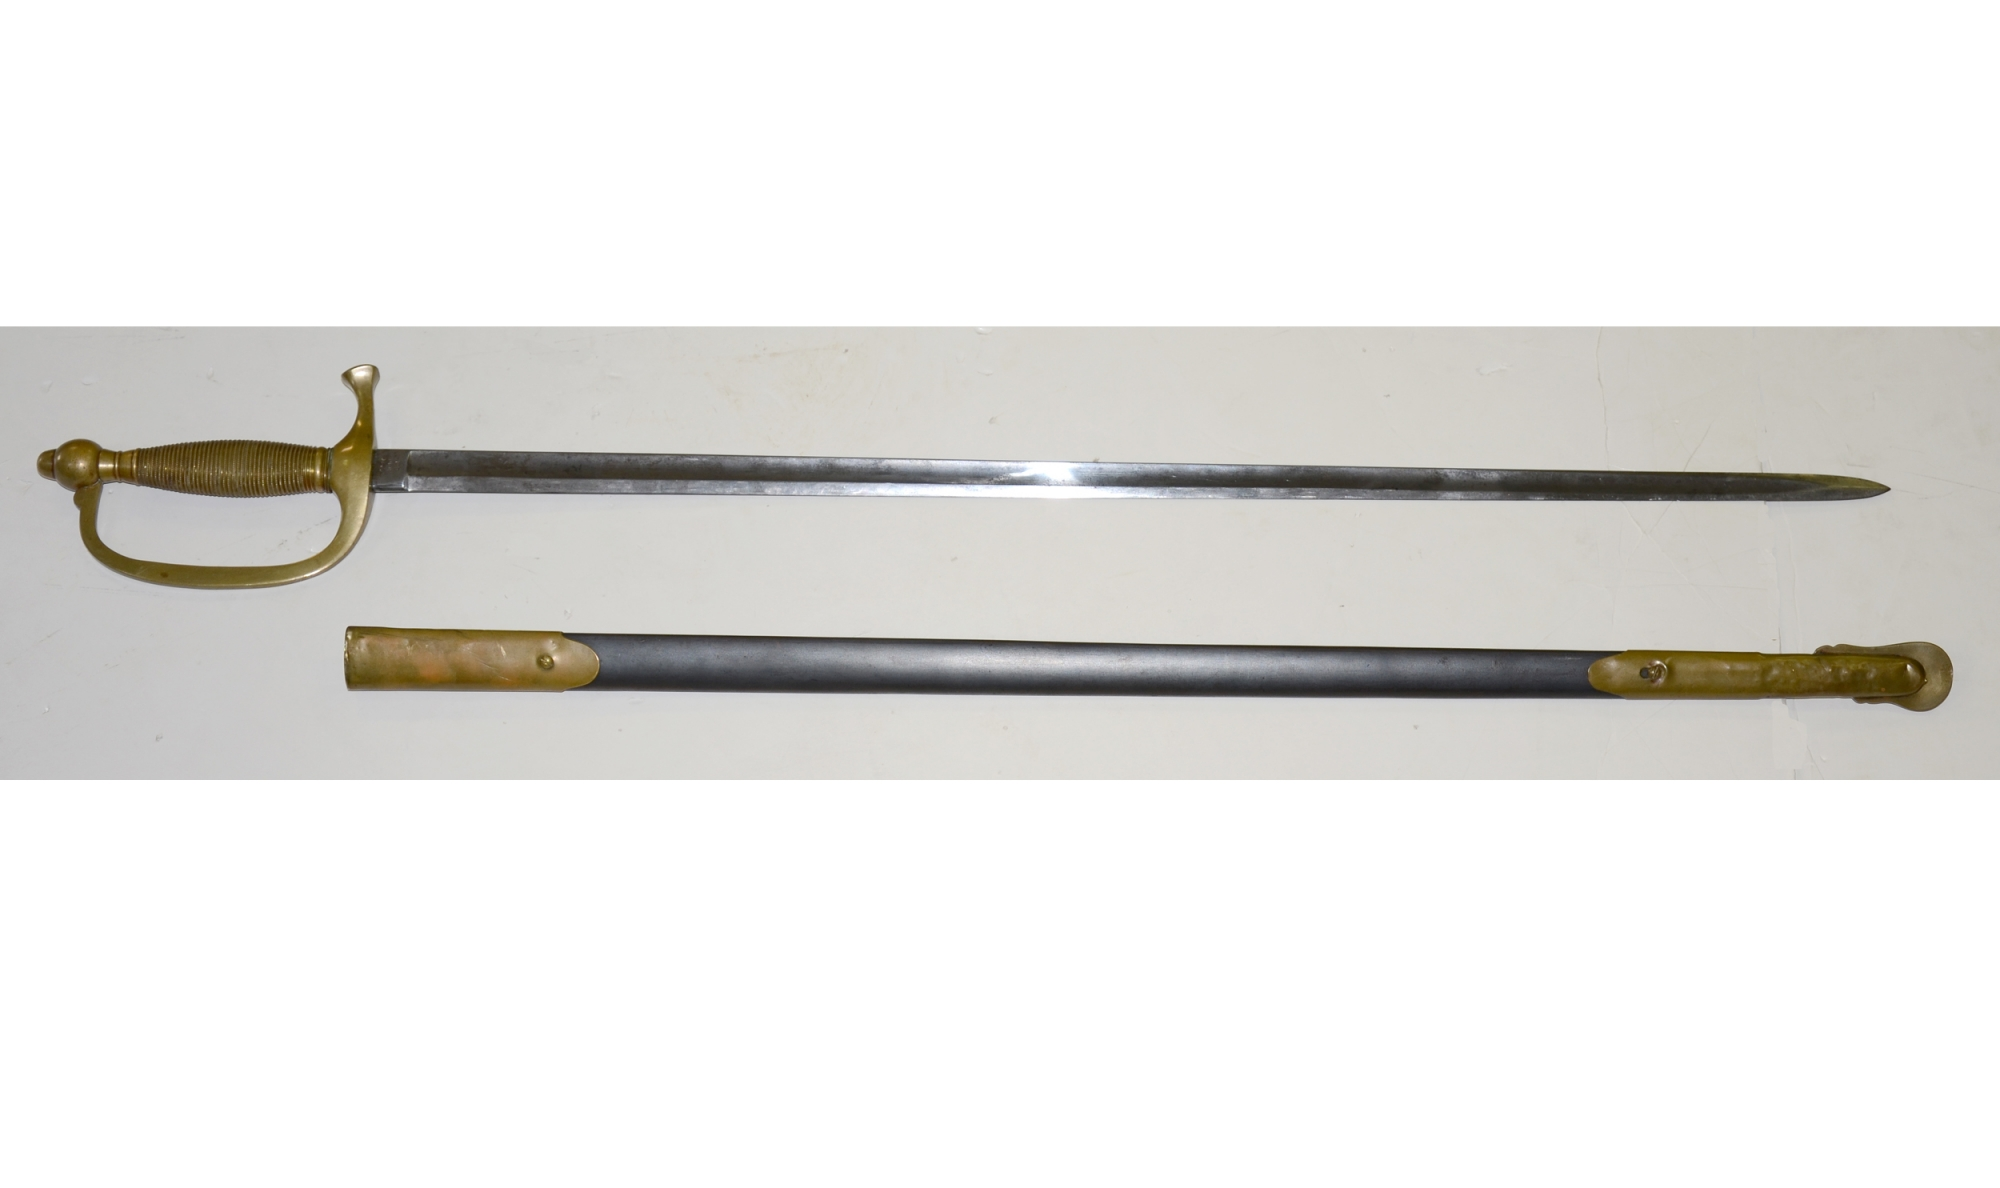 MODEL 1840 MUSICIAN'S SWORD AND SCABBARD BY EMERSON & SILVER